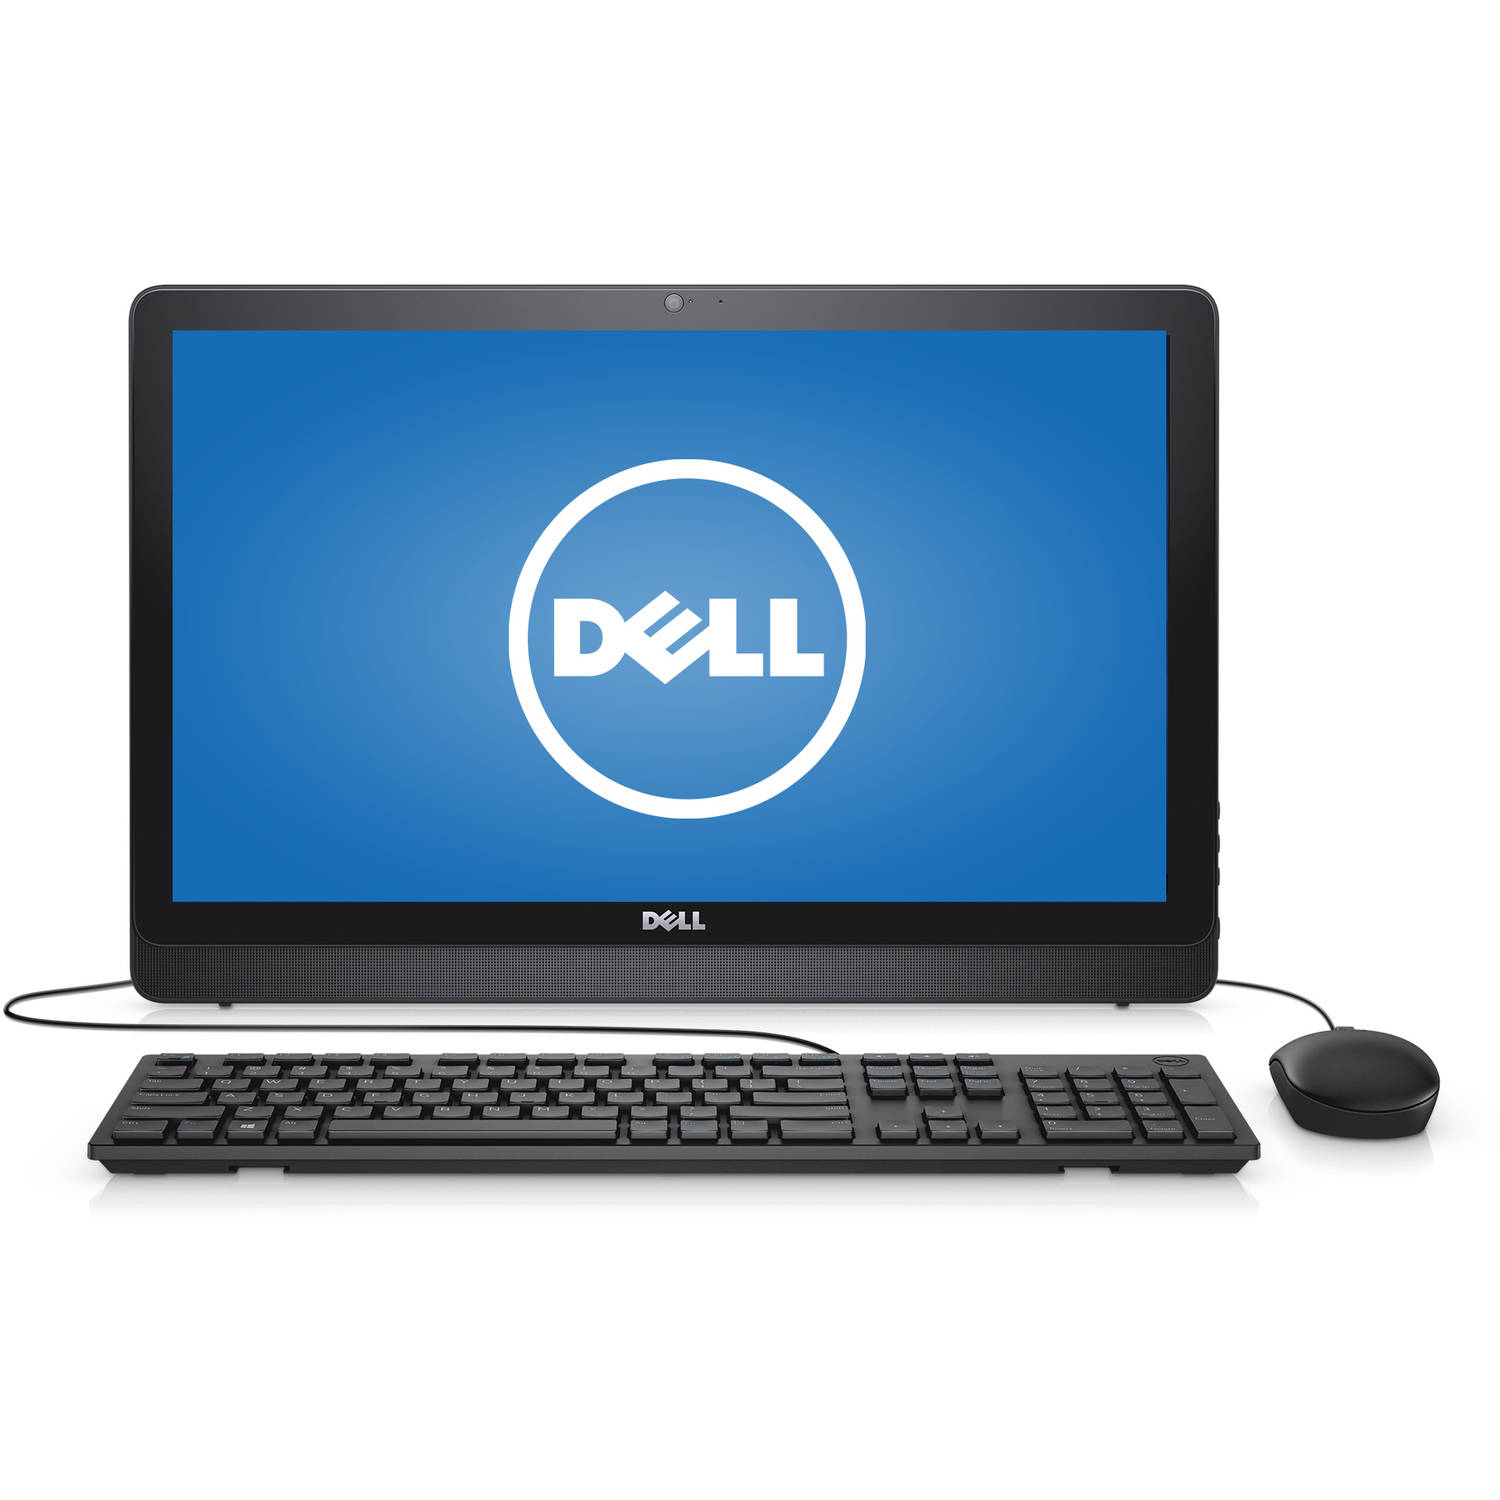 "Dell - Inspiron 21.5"" All-in-One Desktop - AMD A6 - 4GB Memory -1TB HD - Black"